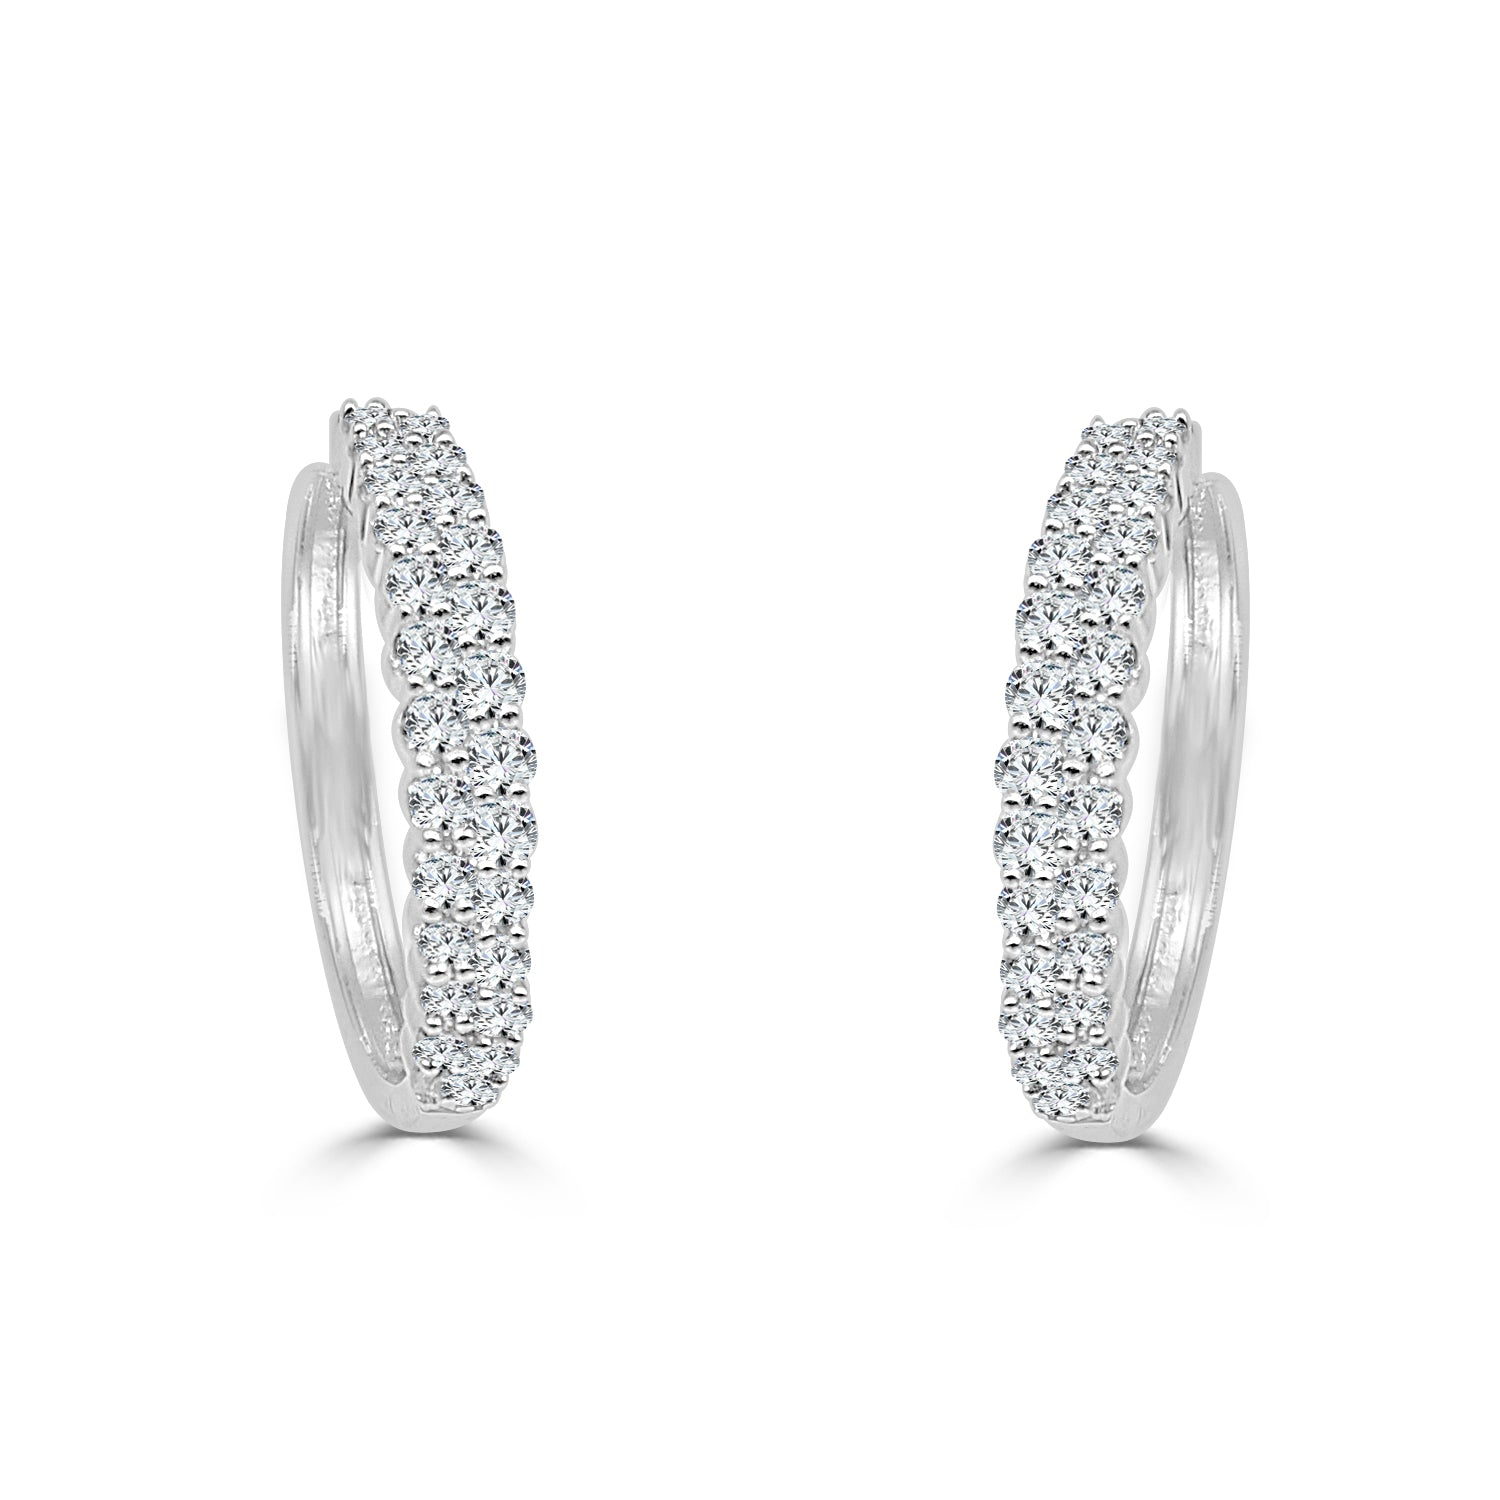 unique jewelry gold round carat ctw in and earrings diamonds stud diamond of baguette one white allezgisele amazon